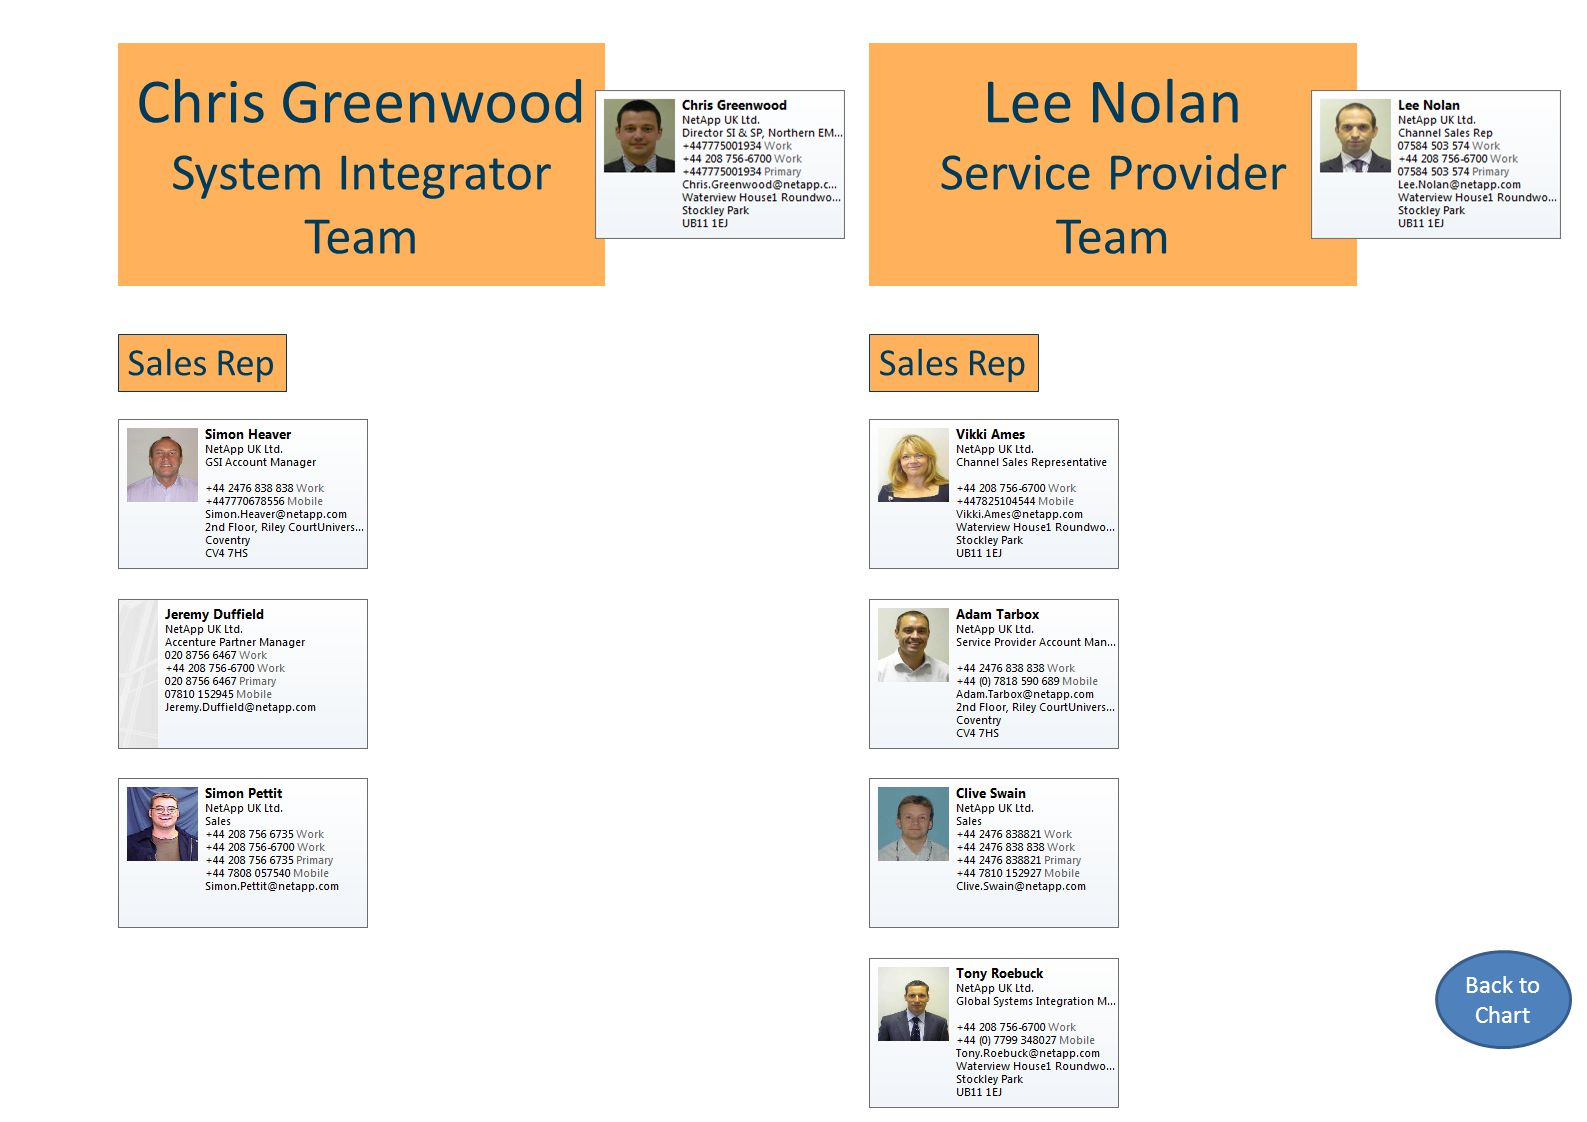 Chris Greenwood System Integrator Team